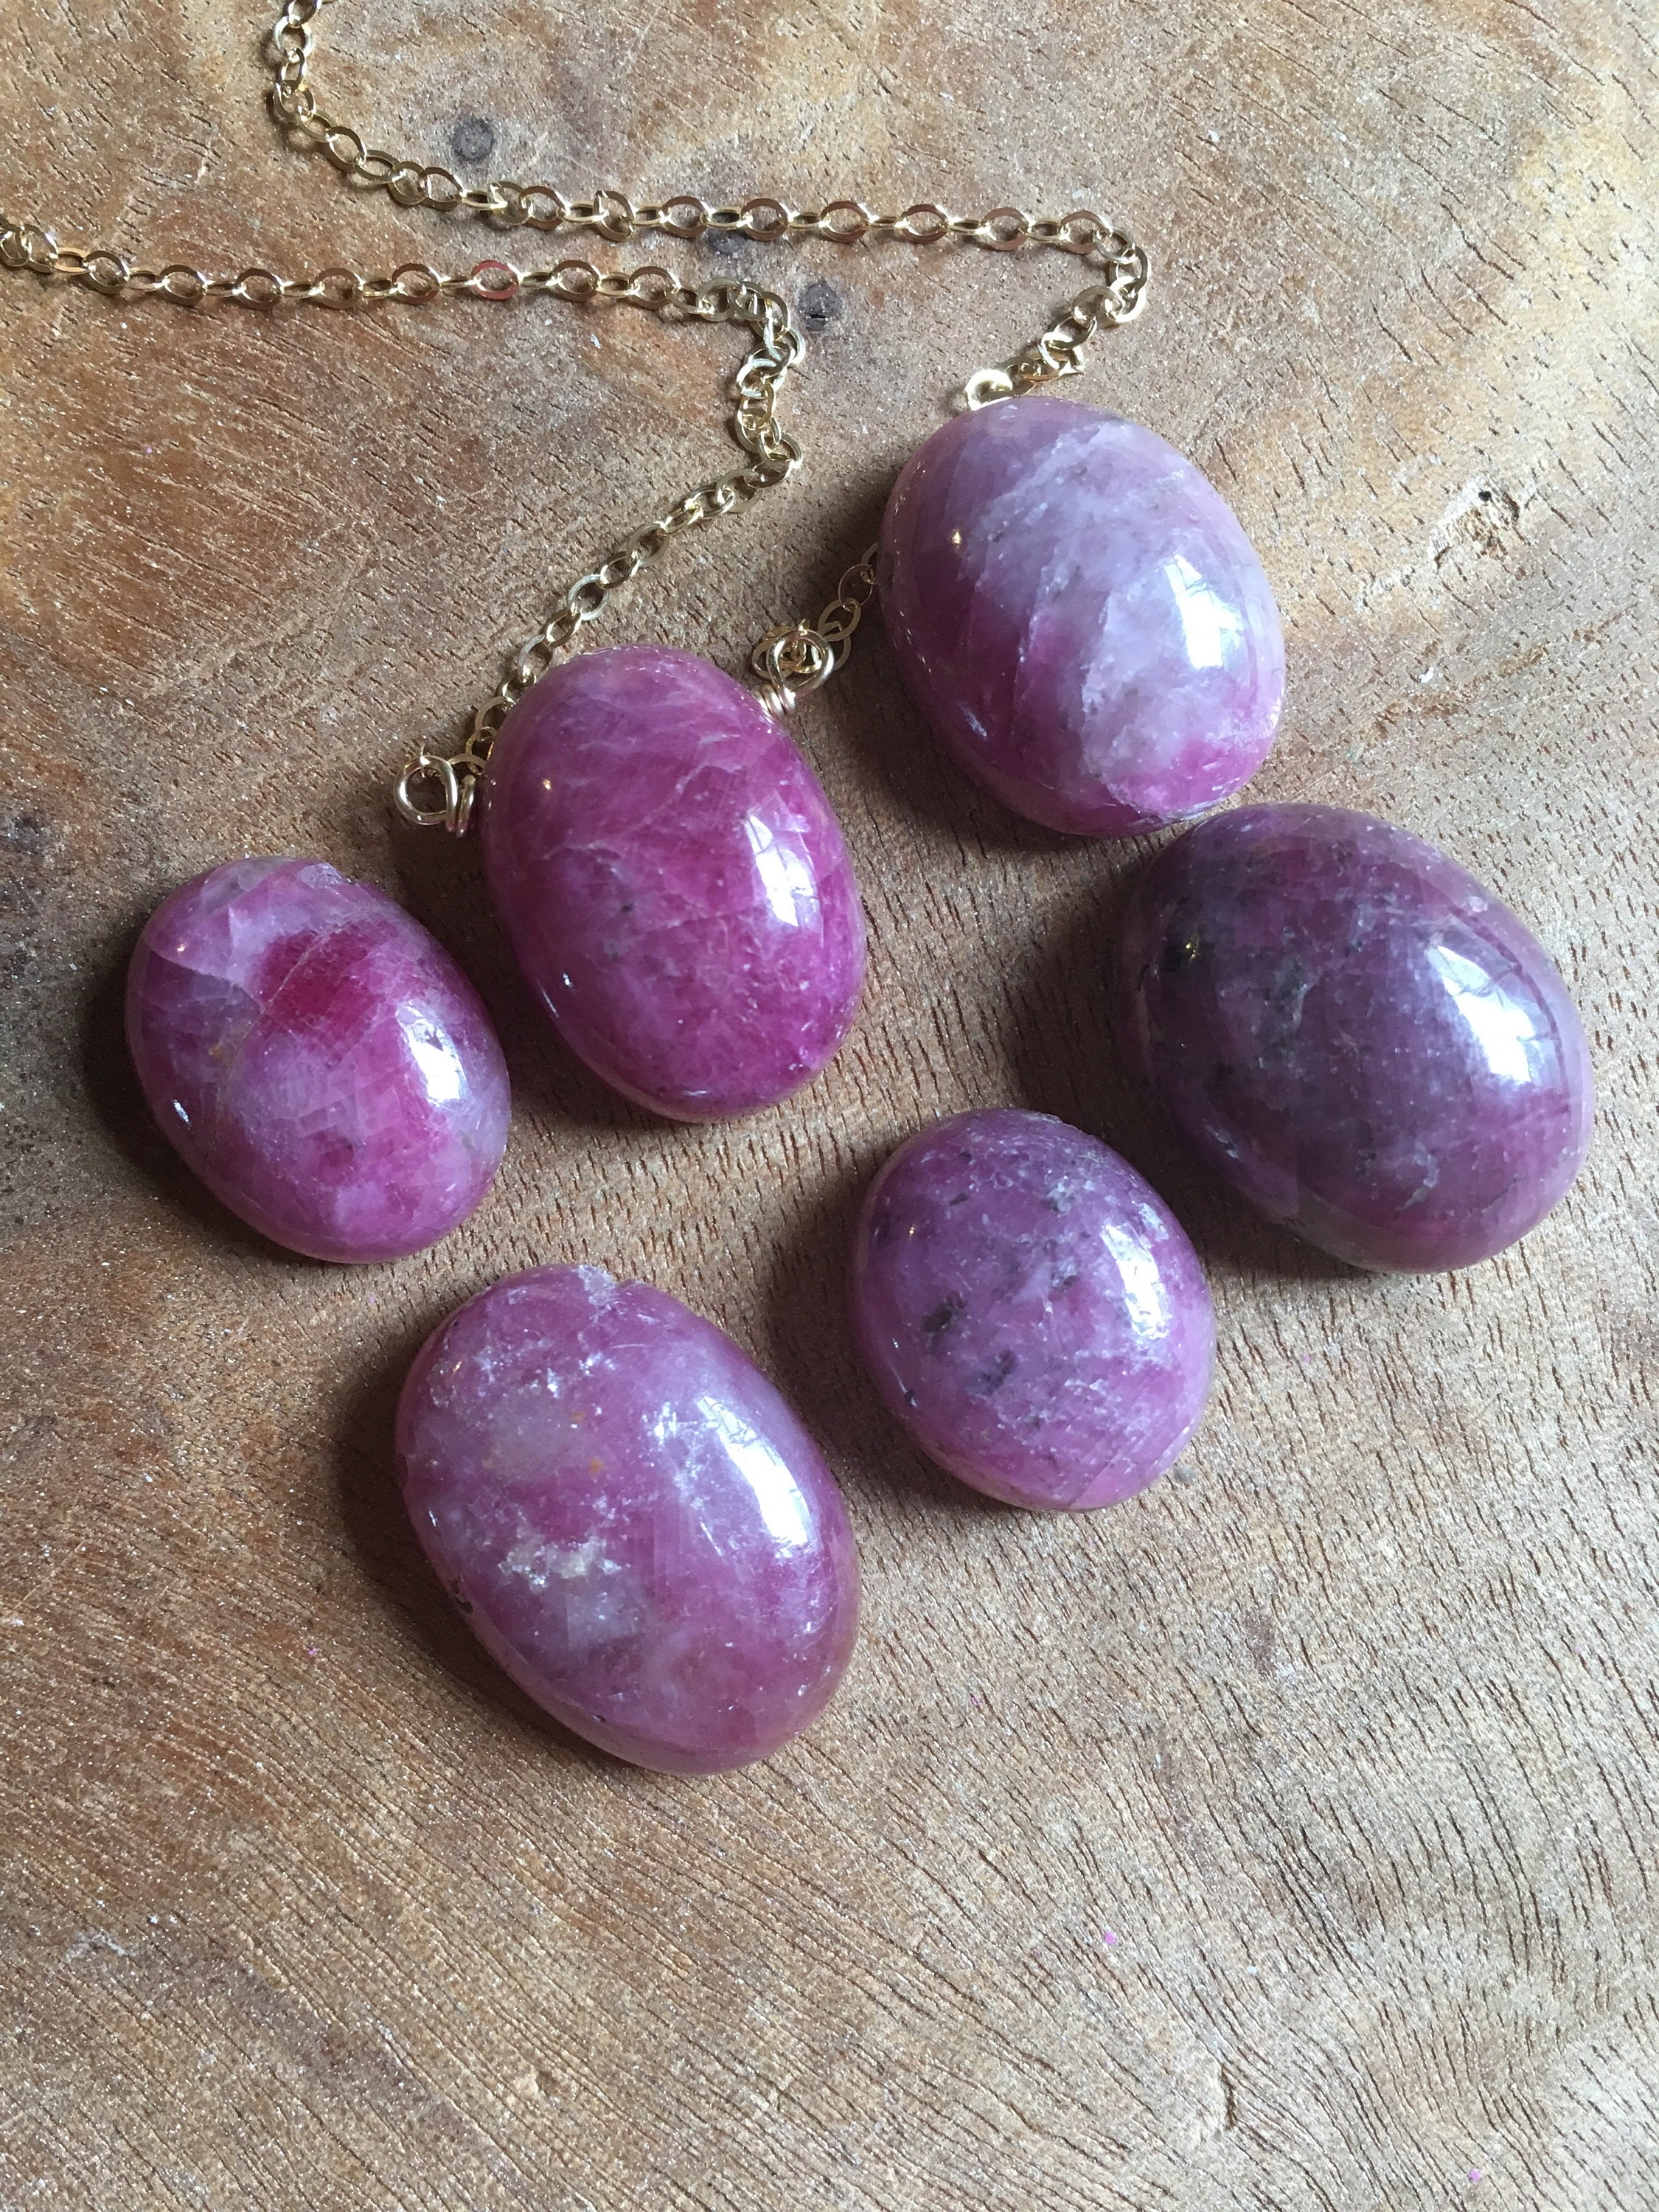 ee8a0879fc2 Ruby Necklace - Raw Ruby Necklace - July Birthstone Necklace - Ruby Jewelry  - Gift For Her - Ruby - Raw Stone Necklace - Genuine Ruby